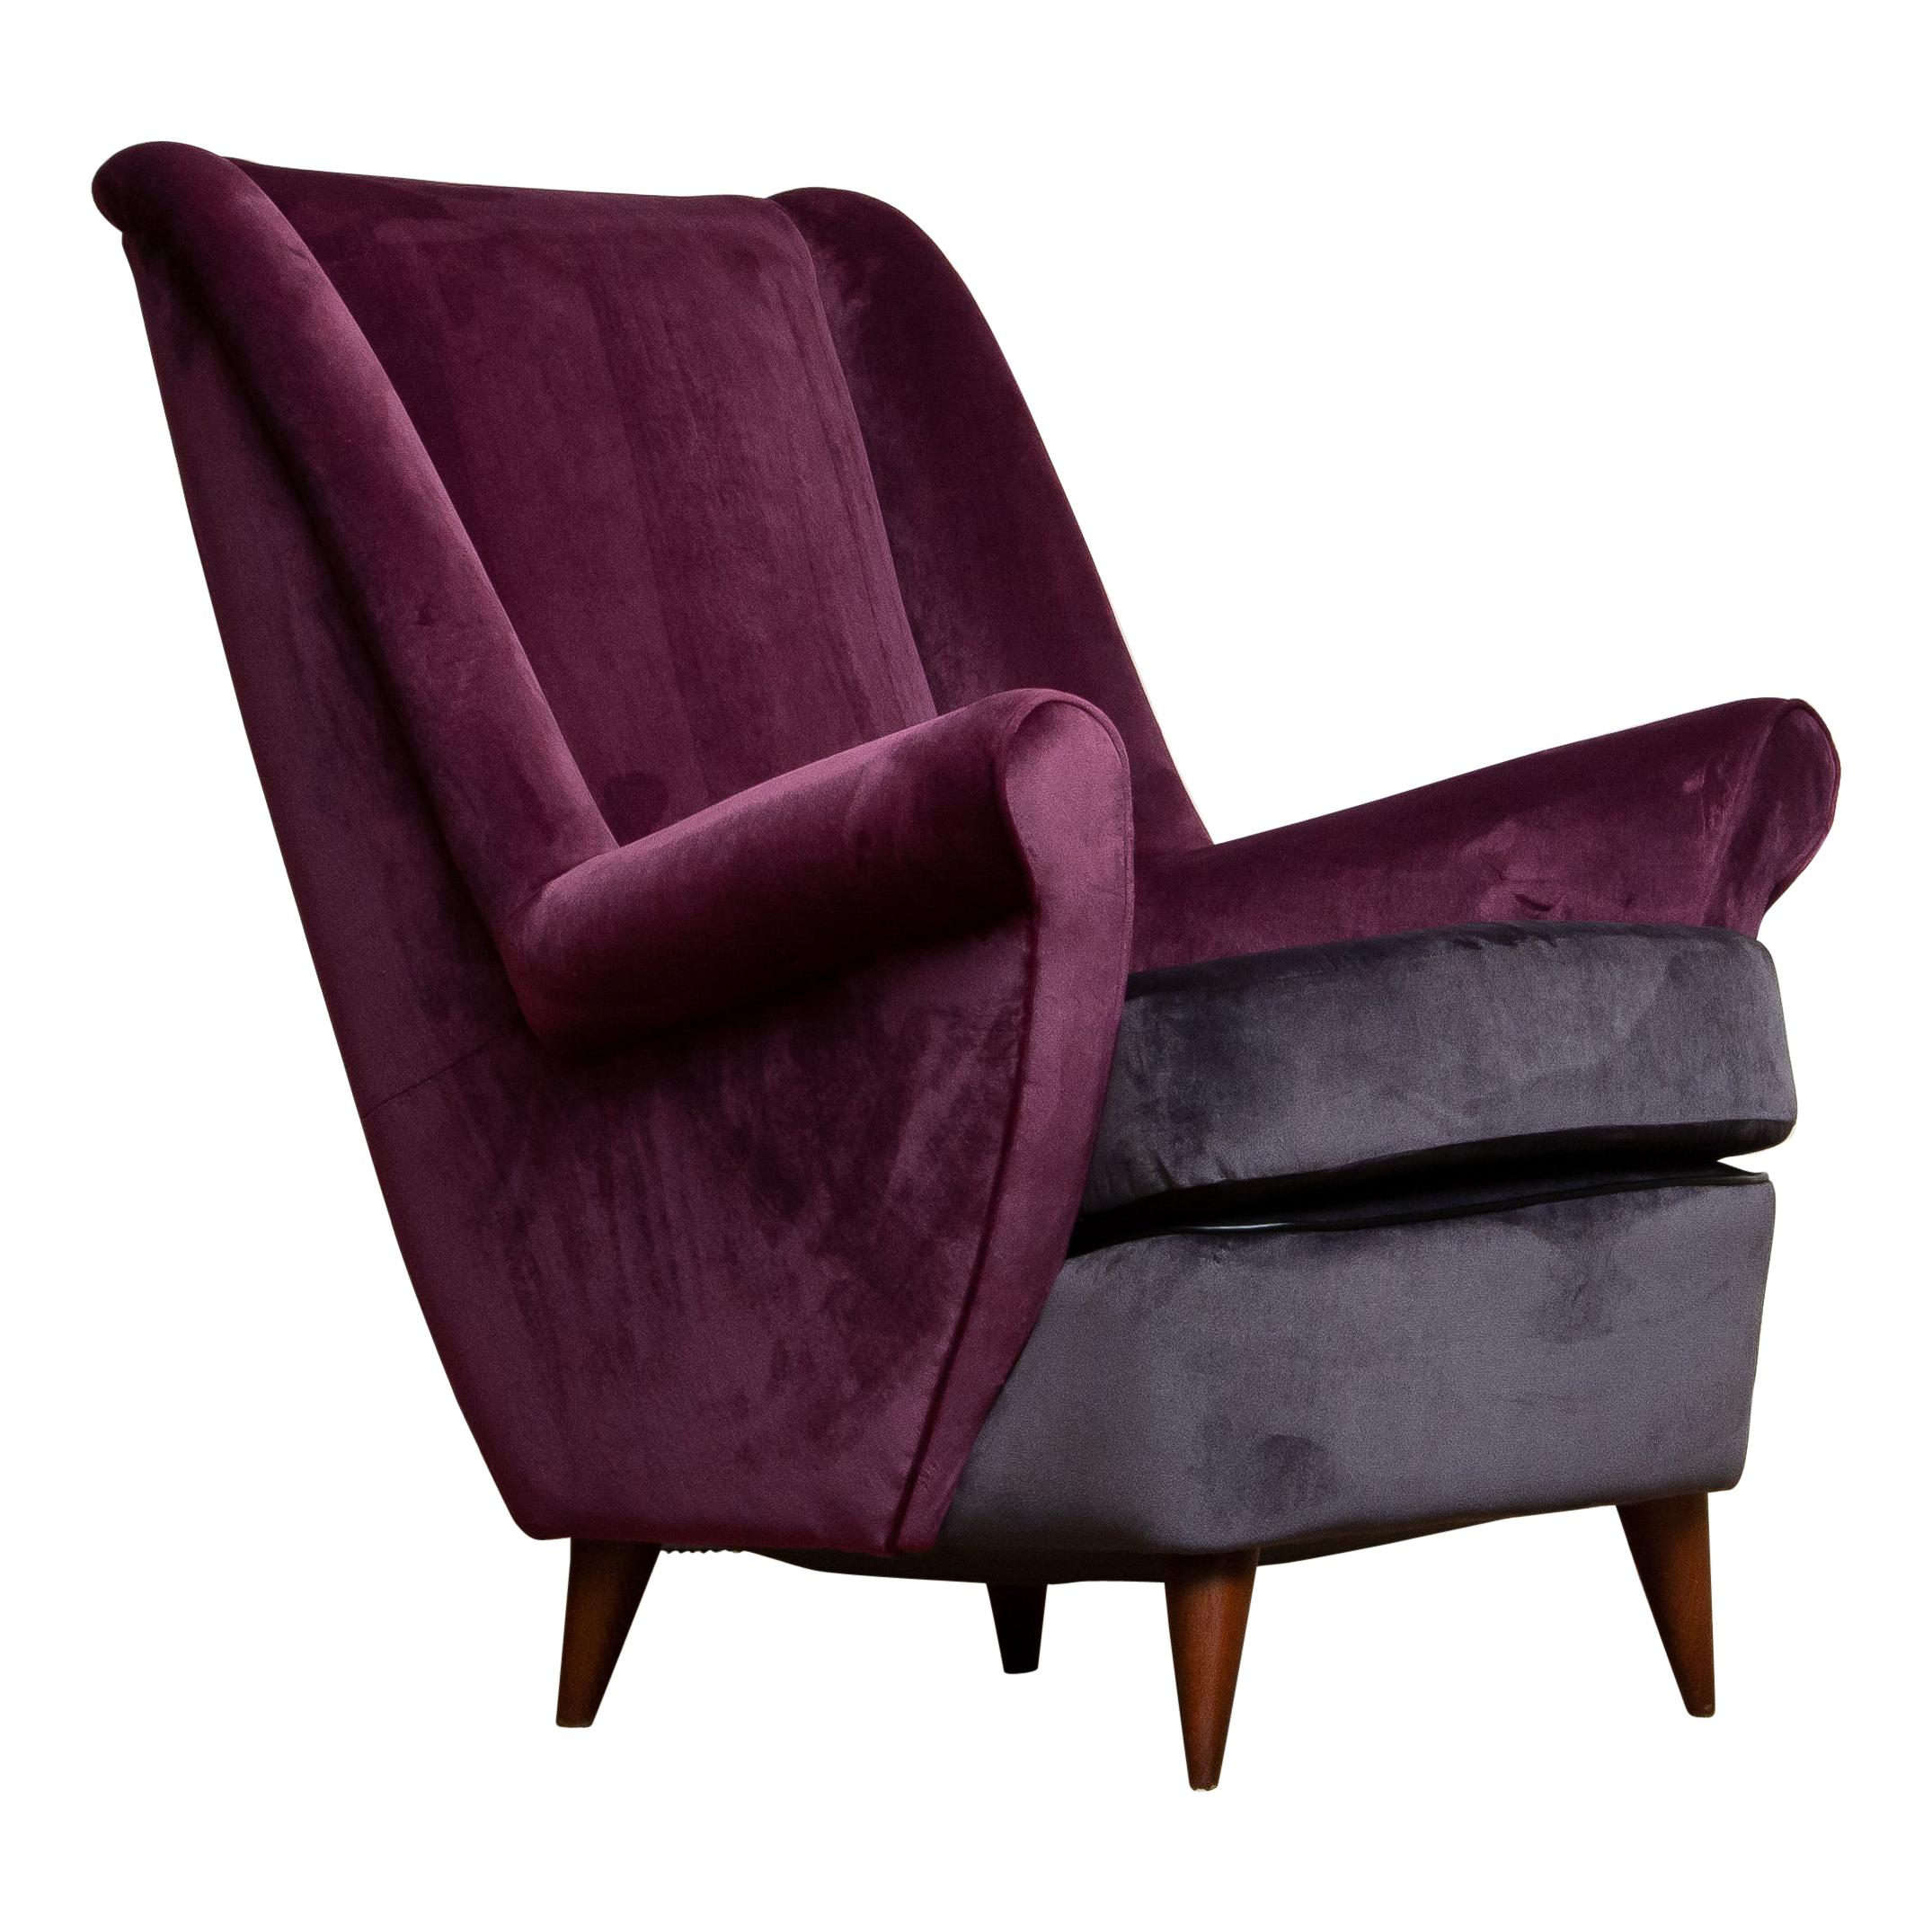 50's Lounge / Easy Chair in Magenta by Designed Gio Ponti for ISA Bergamo Italy